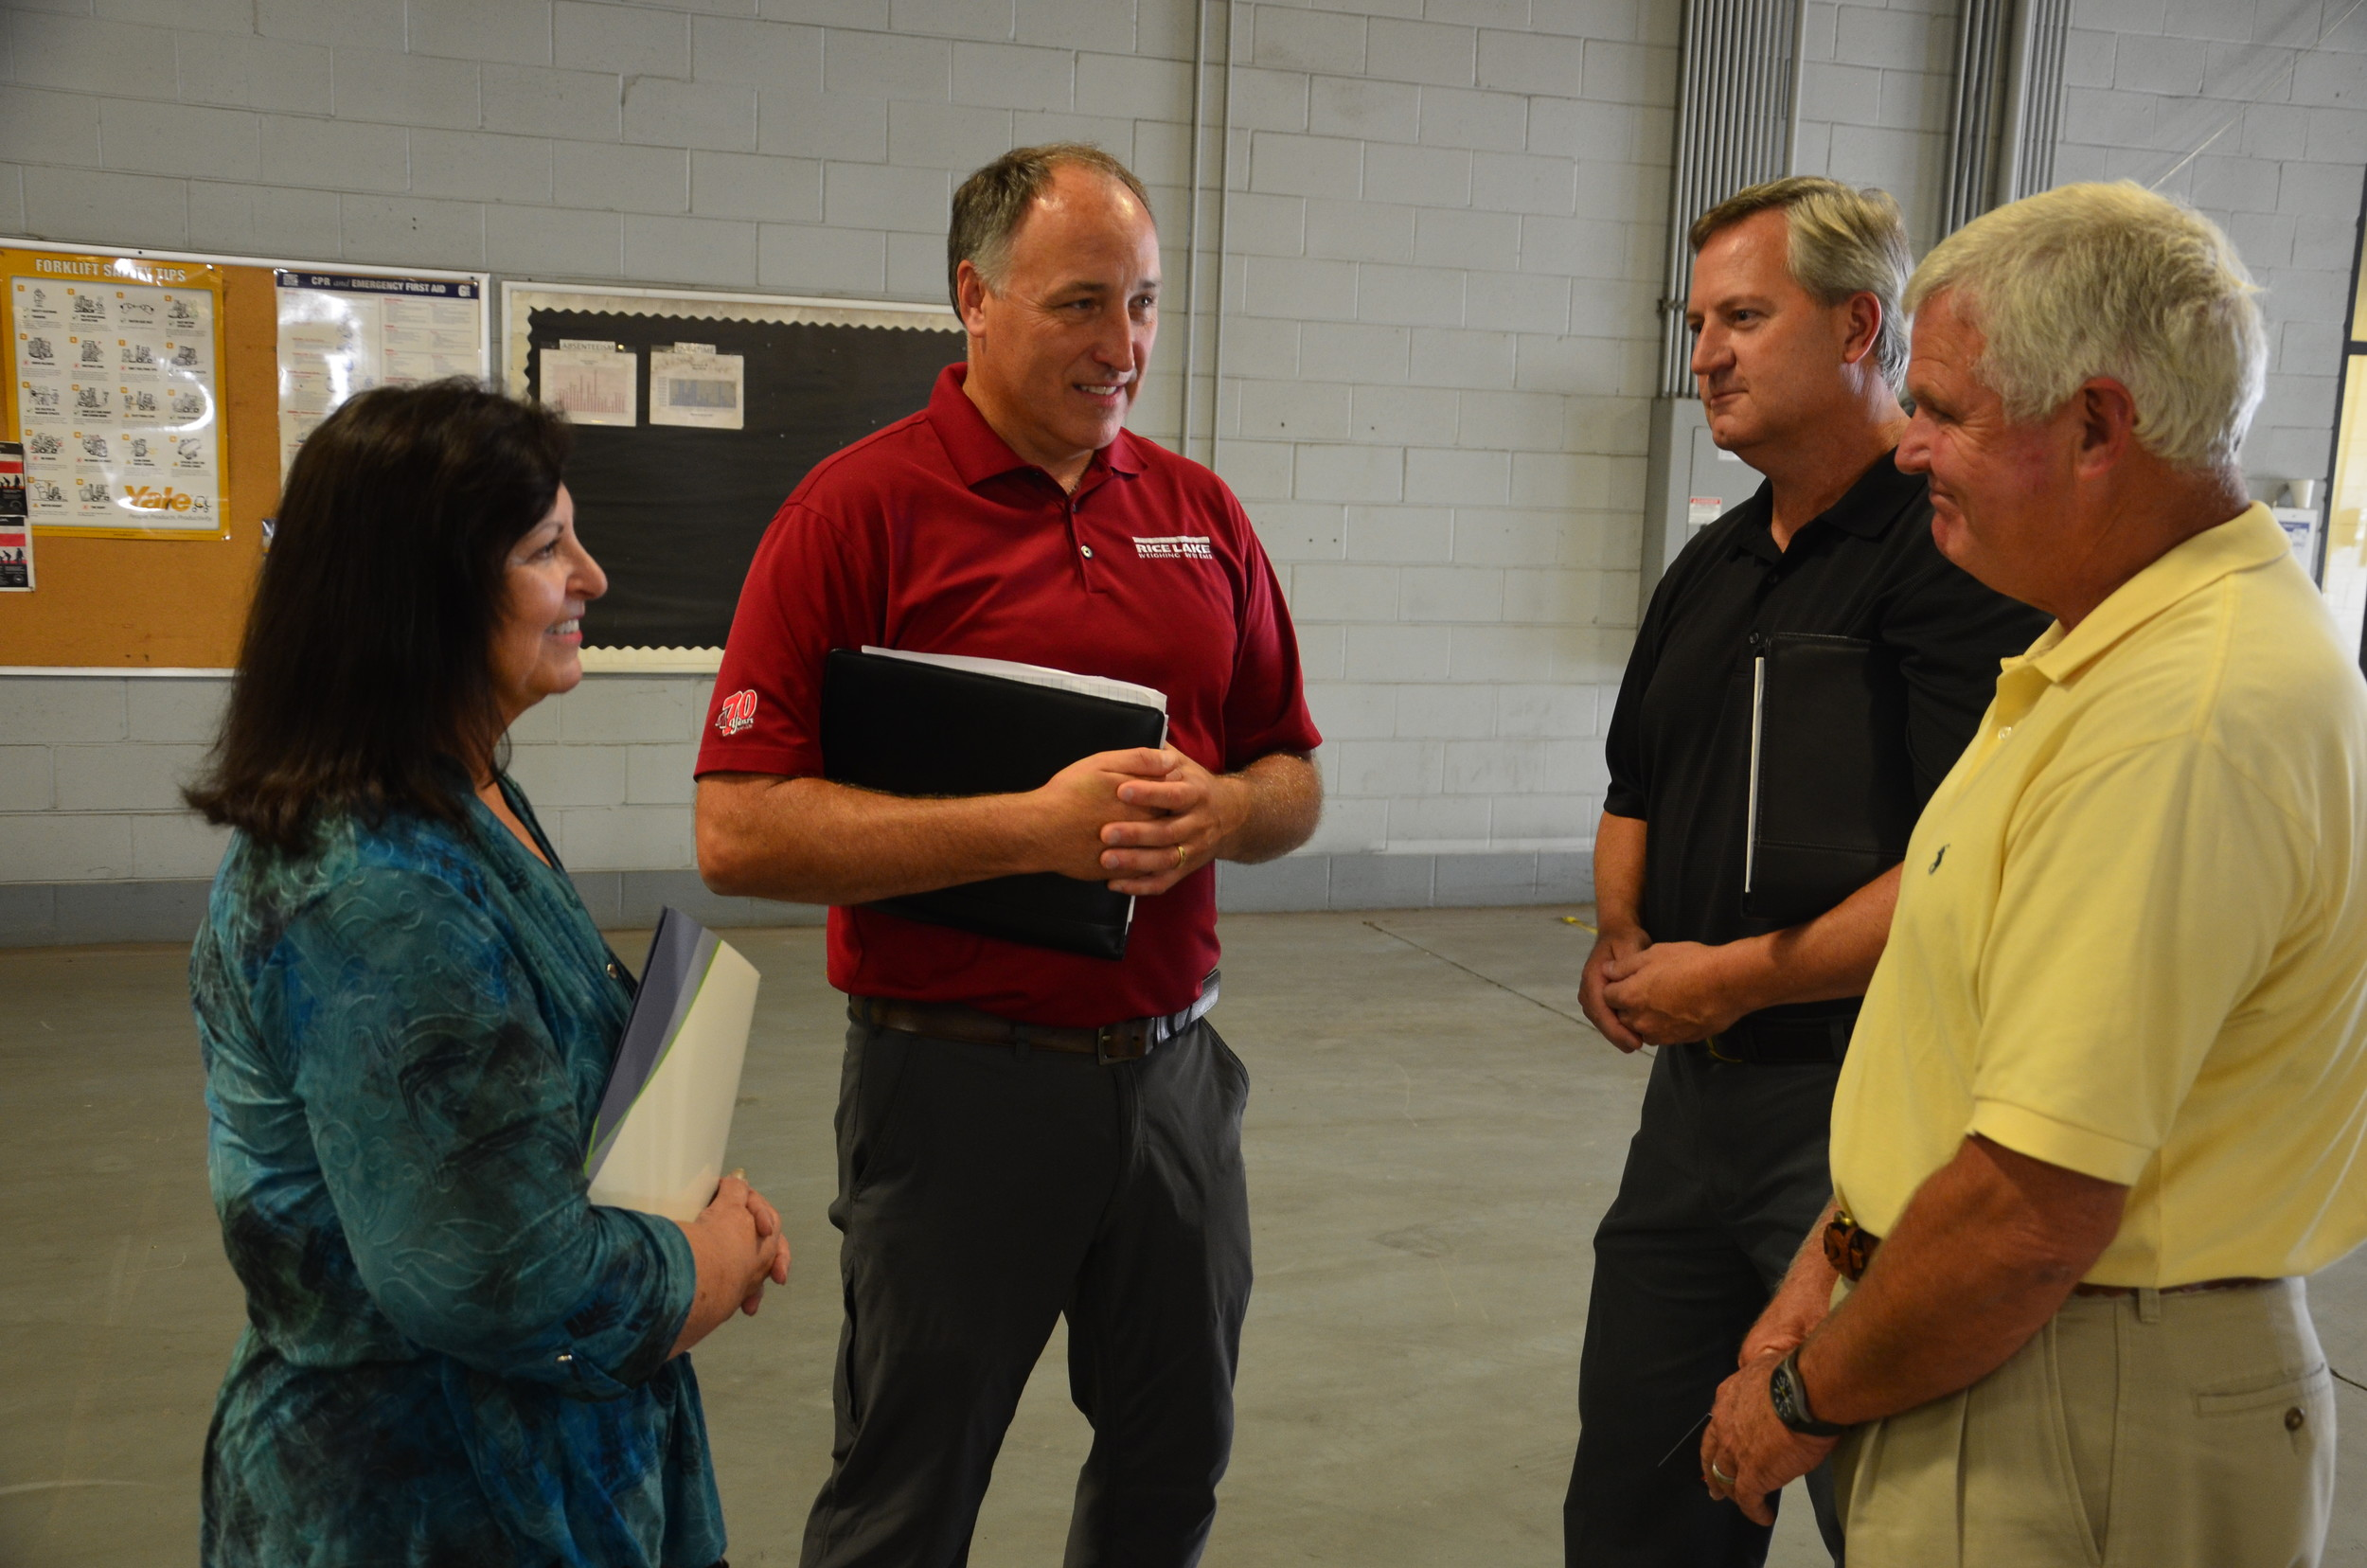 Rice Lake Vice President of Manufacturing Dominic Hodkiewicz and Marian Powell, general manager, speak with Mayor David O'Mary and David Knight, director of the Walker County Development Authority and Jasper Industrial Development Board at the new Rice Lake manufacturing facility in Jasper.